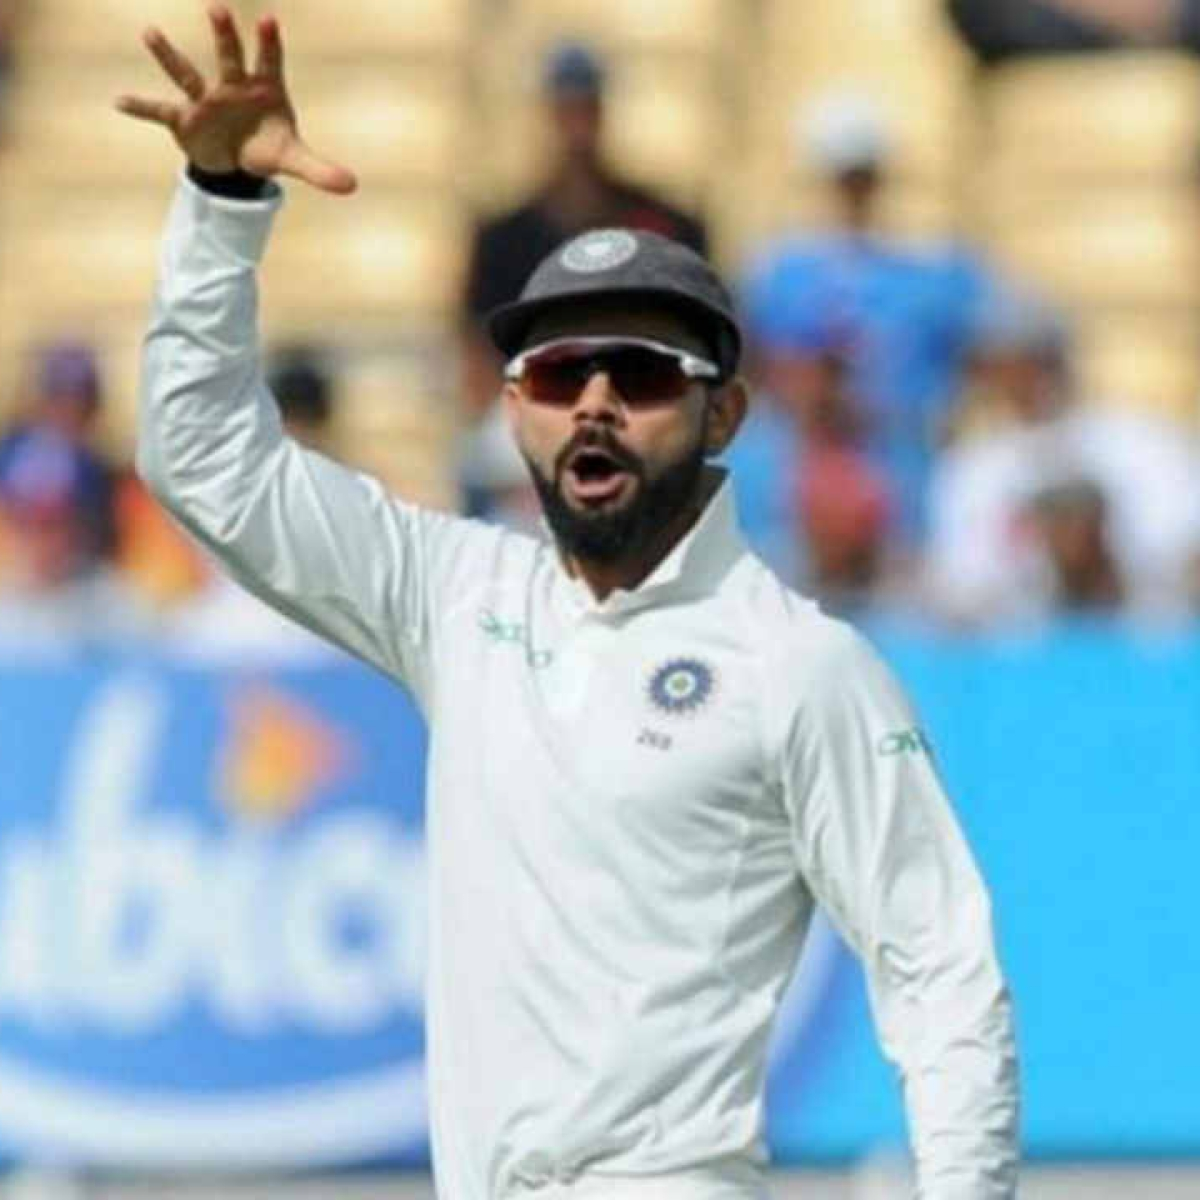 India without Kohli will be like Australia without Smith and Warner, says former pacer Geoff Lawson